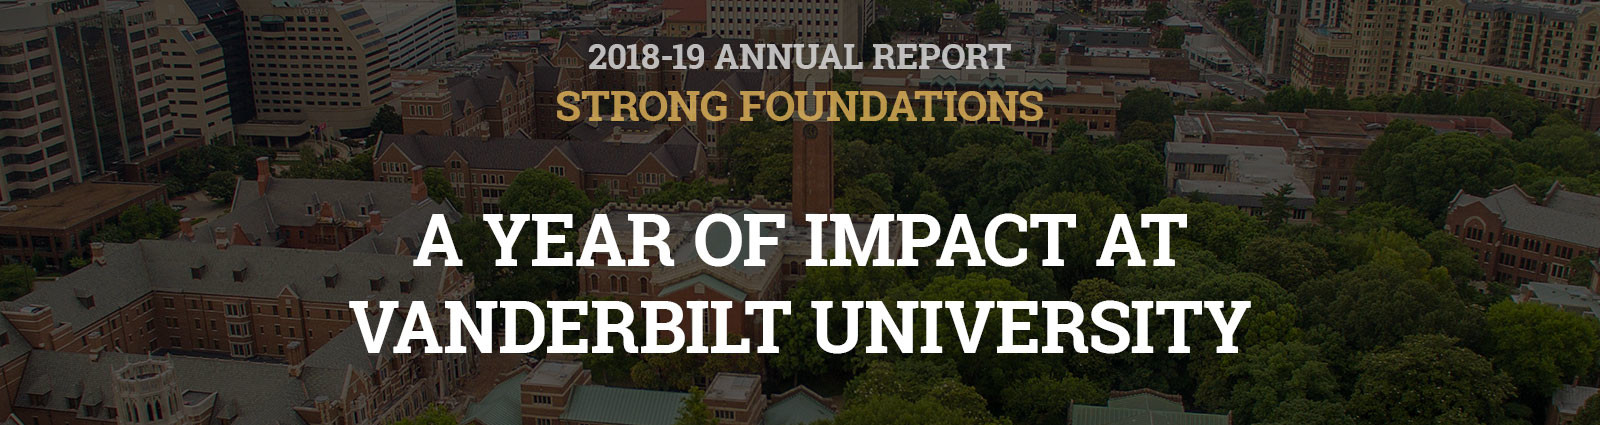 Strong Foundations:  A Year of Impact at Vanderbilt University